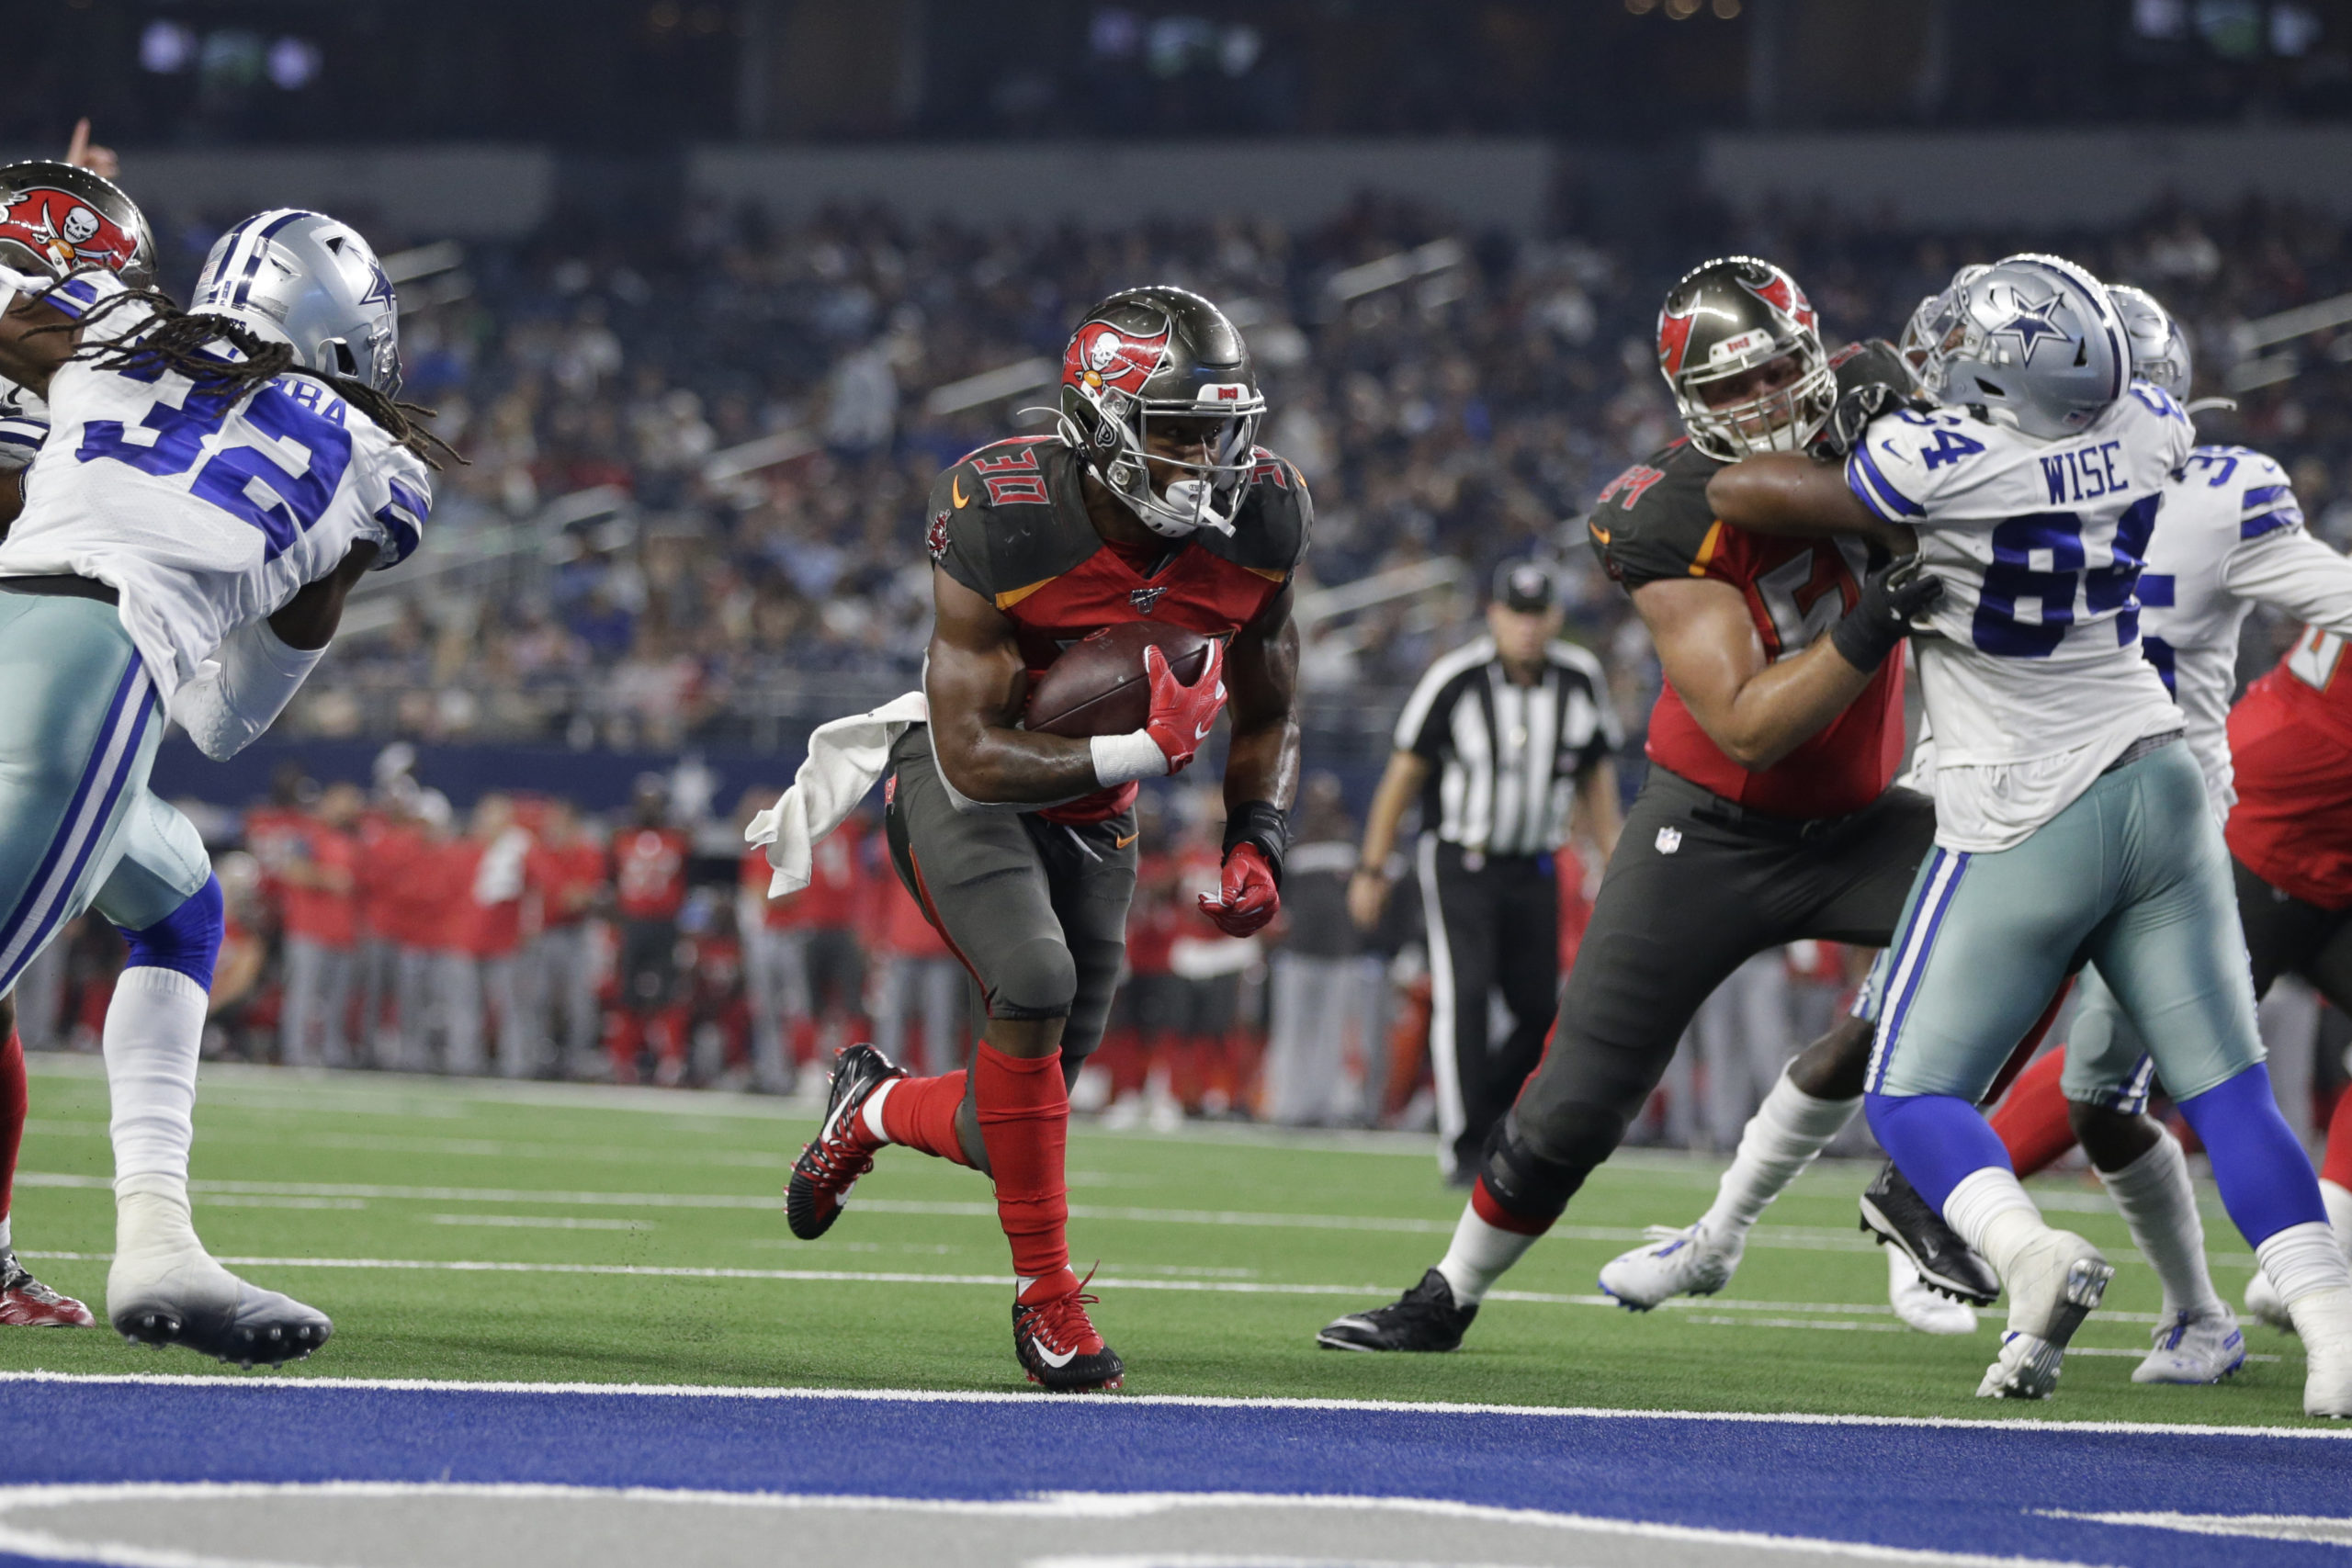 Tampa Bay Buccaneers vs Dallas Cowboys NFL Picks, Odds, Predictions 9/9/21 » Sports Chat Place